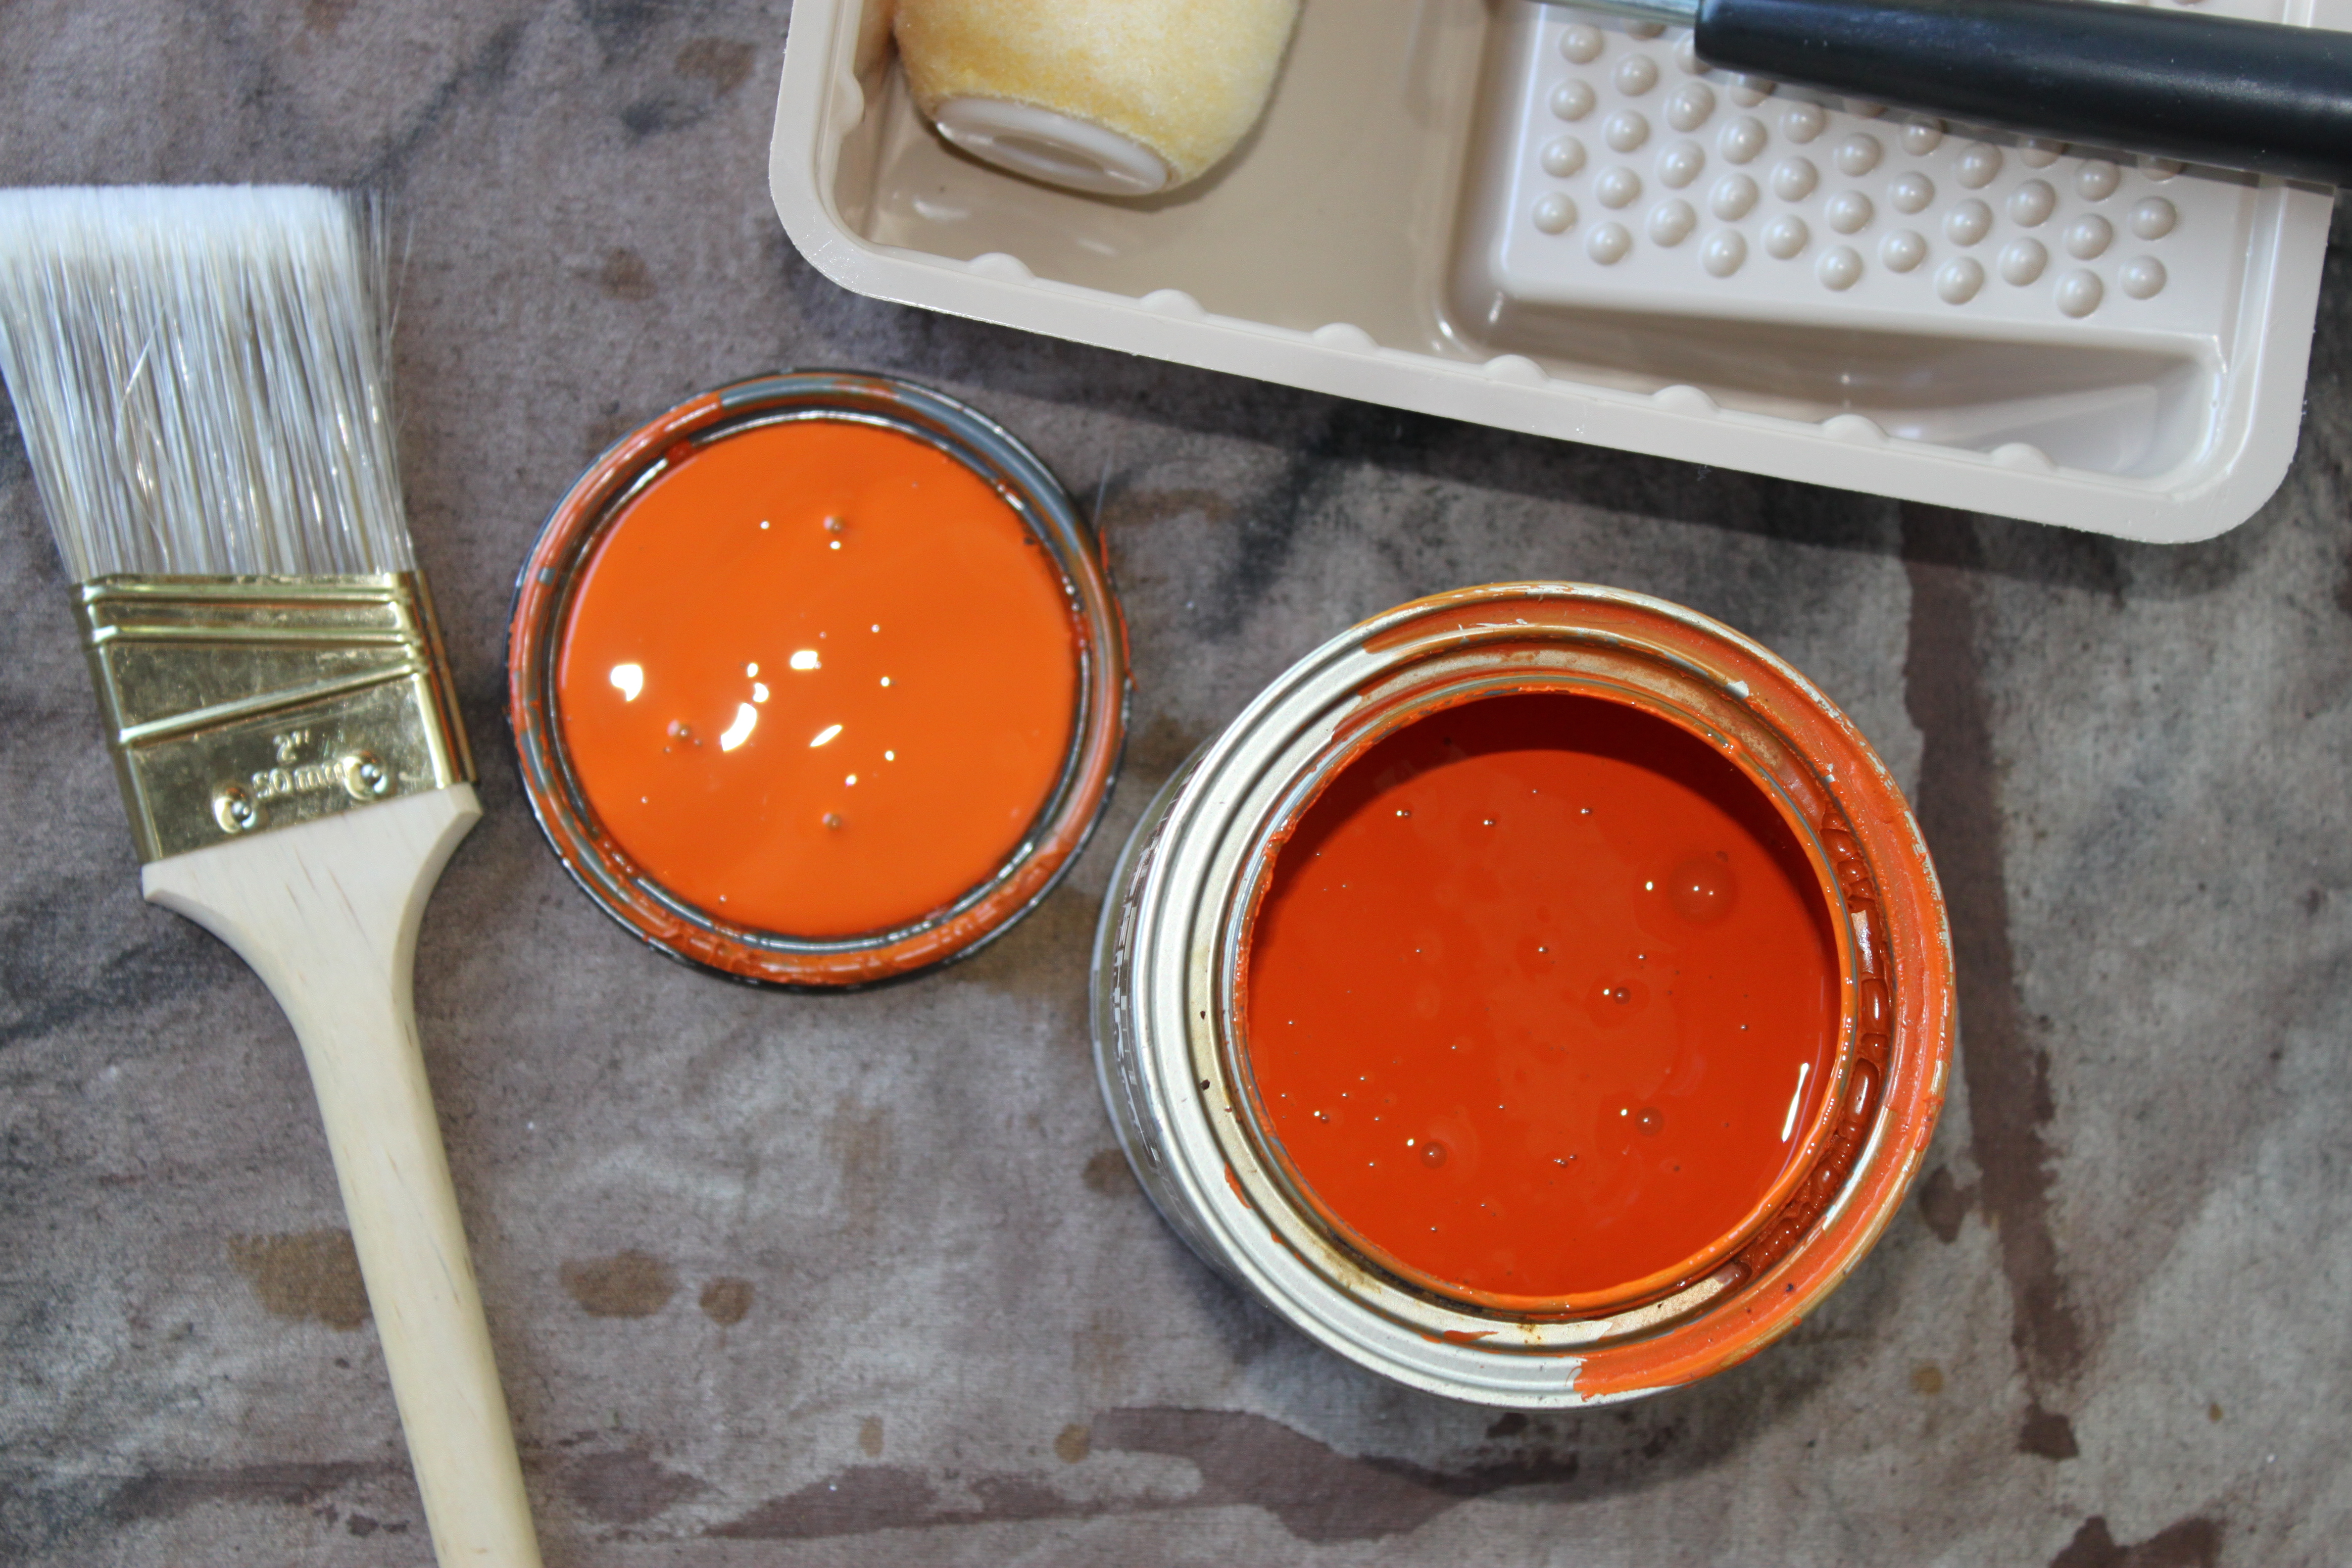 Behr Mandarin Paint In Semi Gloss